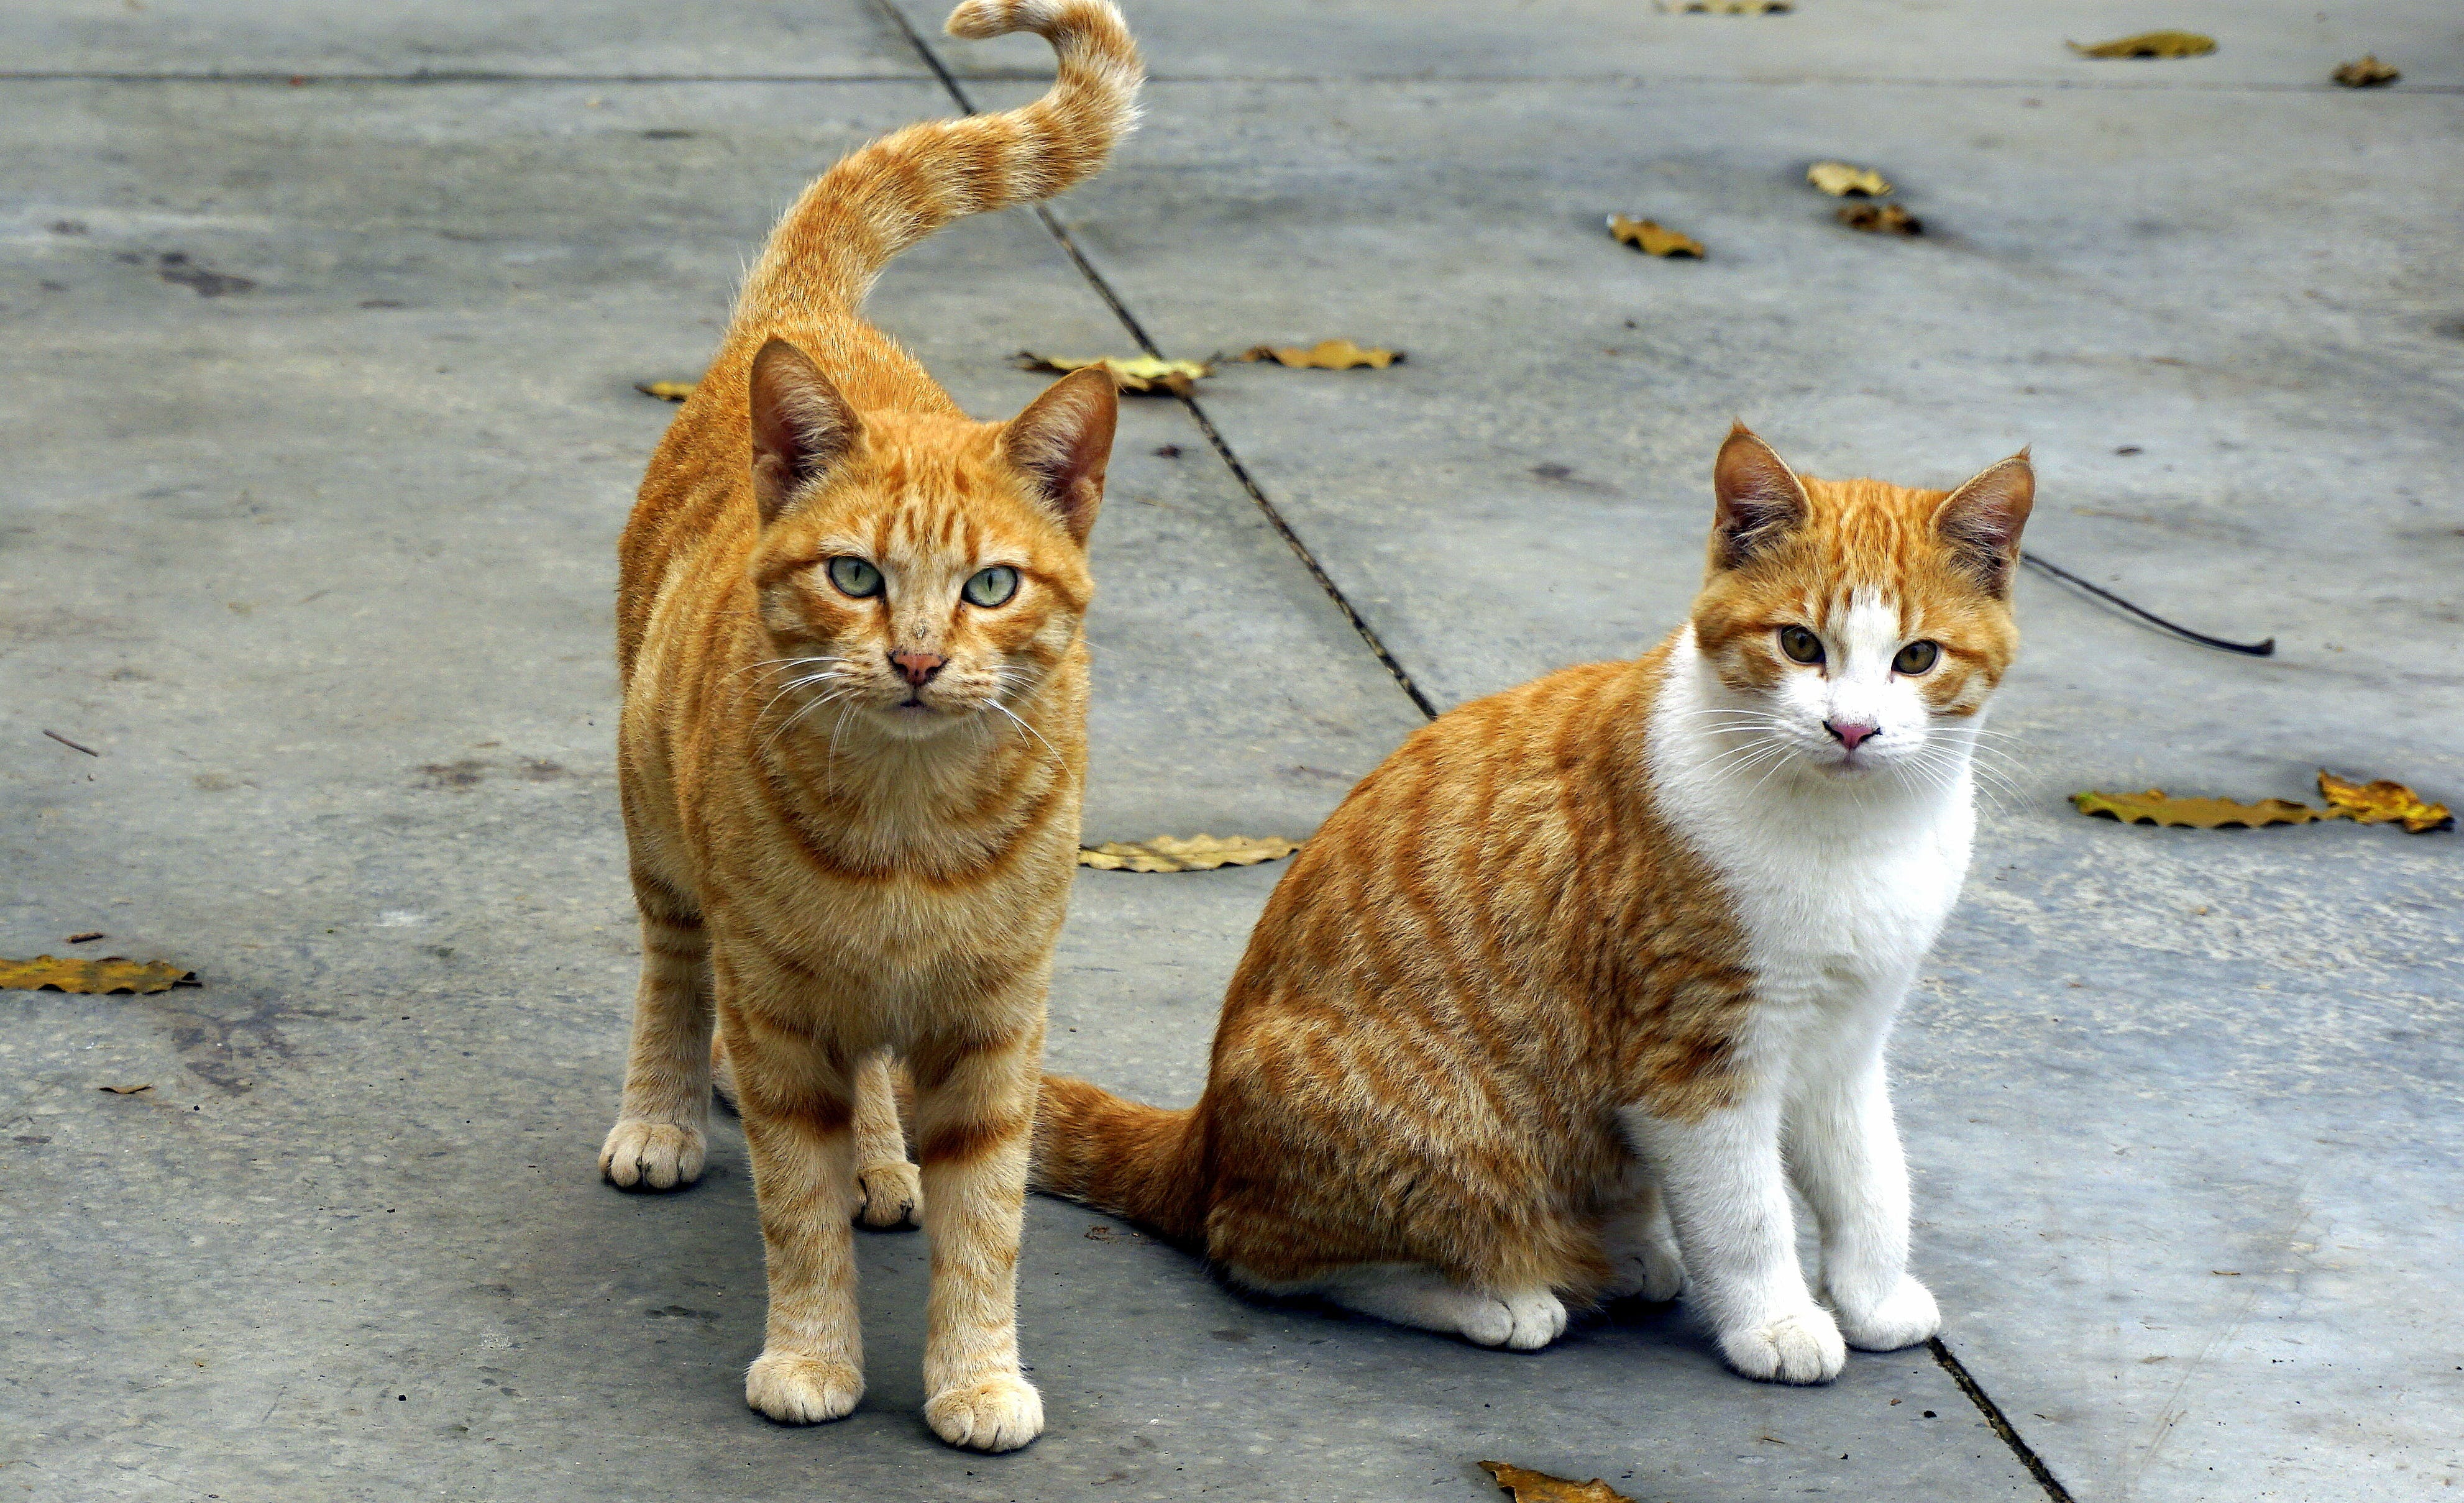 Two Orange Cats Standing and Sitting on Pavement Surrounded With Dried Fallen Leaves